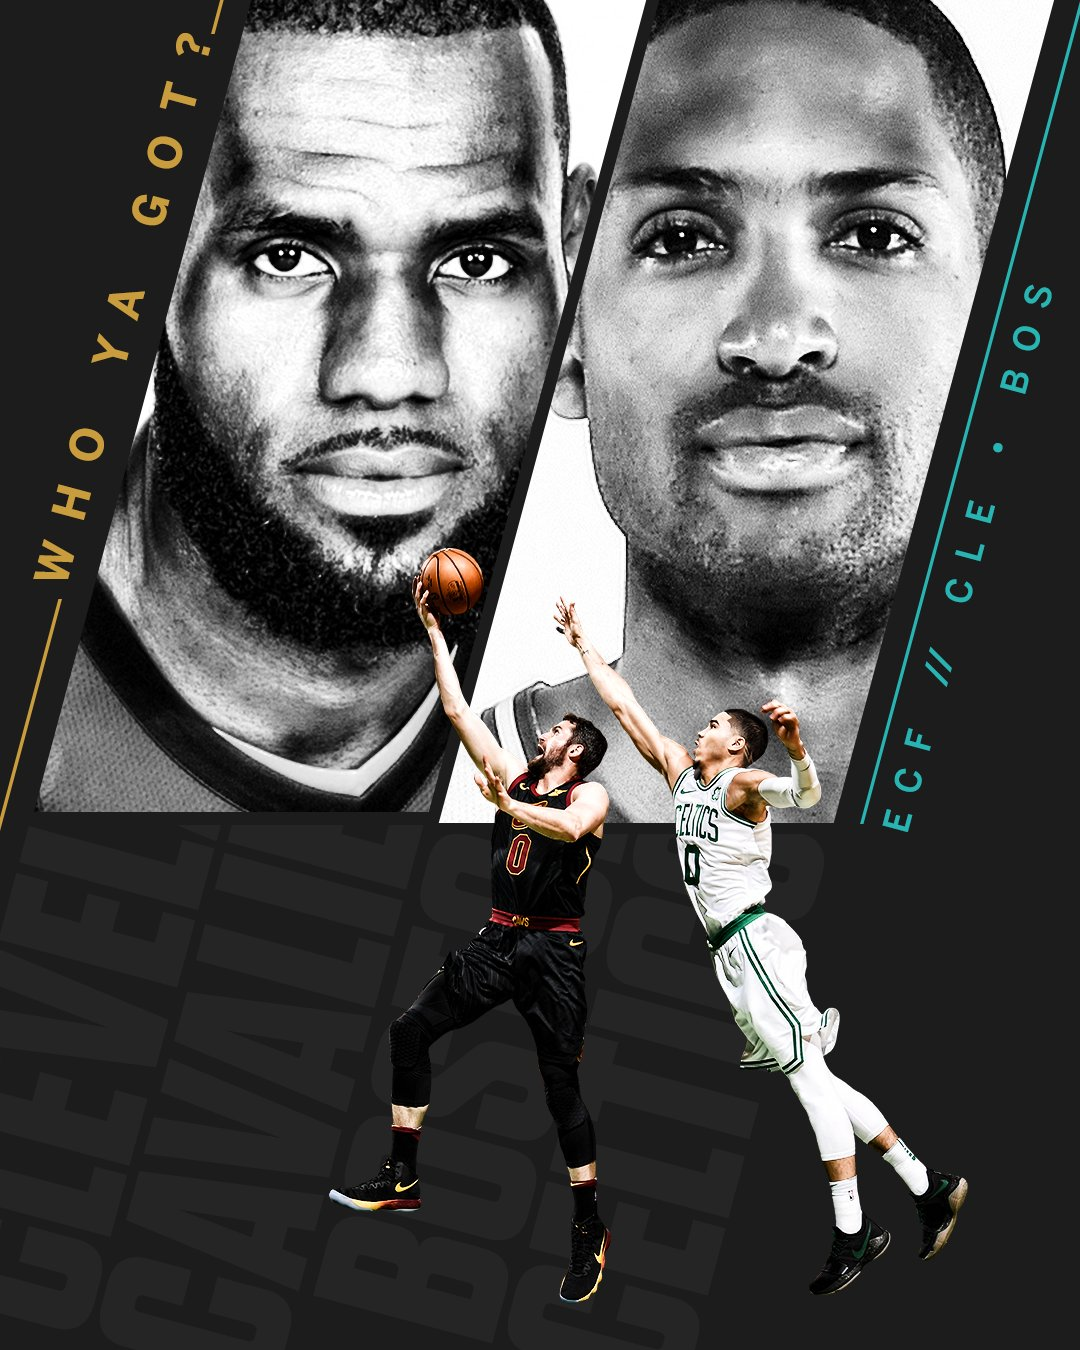 Let the games begin ��  Catch Game 1 of the Eastern Conference finals at 3:30 ET on ABC. https://t.co/zNVrfgtcE9